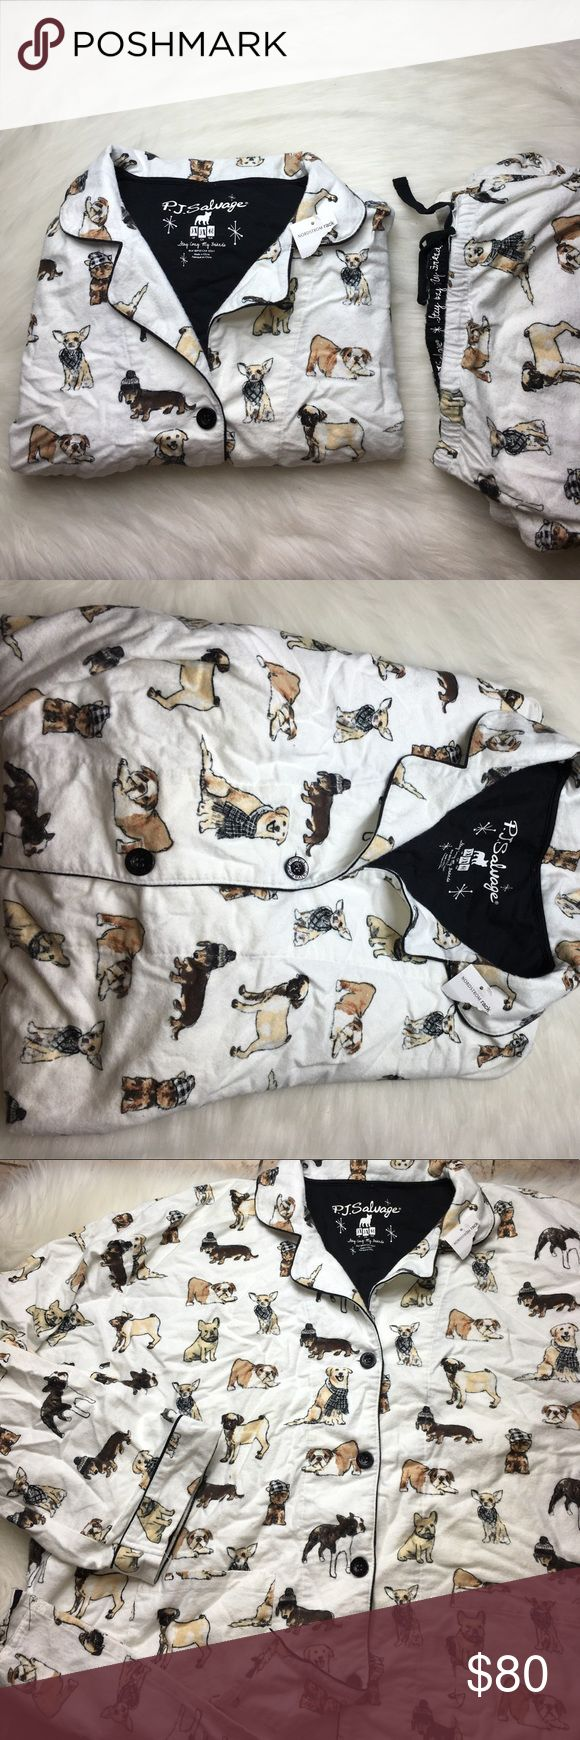 SALE PJ SALVAGE DOG LOVER PAJAMA SET SIZE 3X Super cute and new and flawed! Slightly Ripped near tie front. Want to save more? Bundle and save on shipping. PJ Salvage Intimates & Sleepwear Pajamas